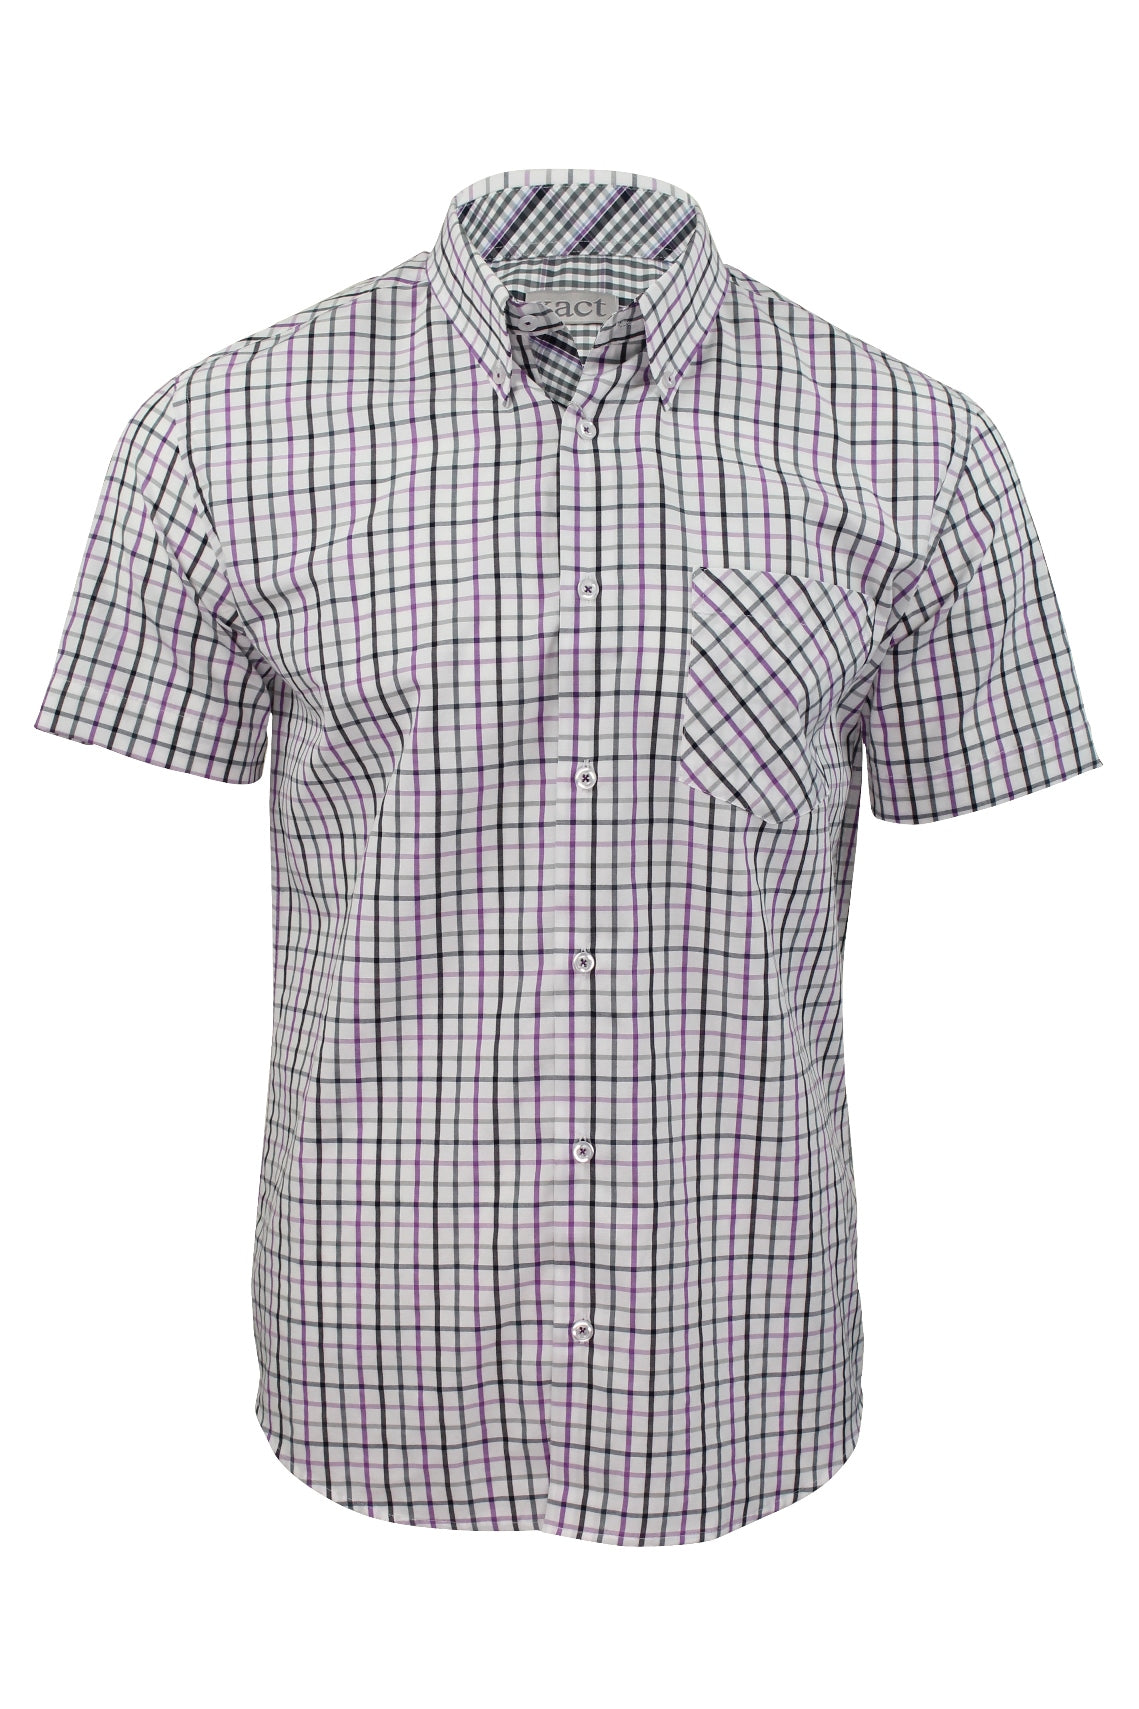 Xact Mens Check Shirt Short Sleeves-Main Image